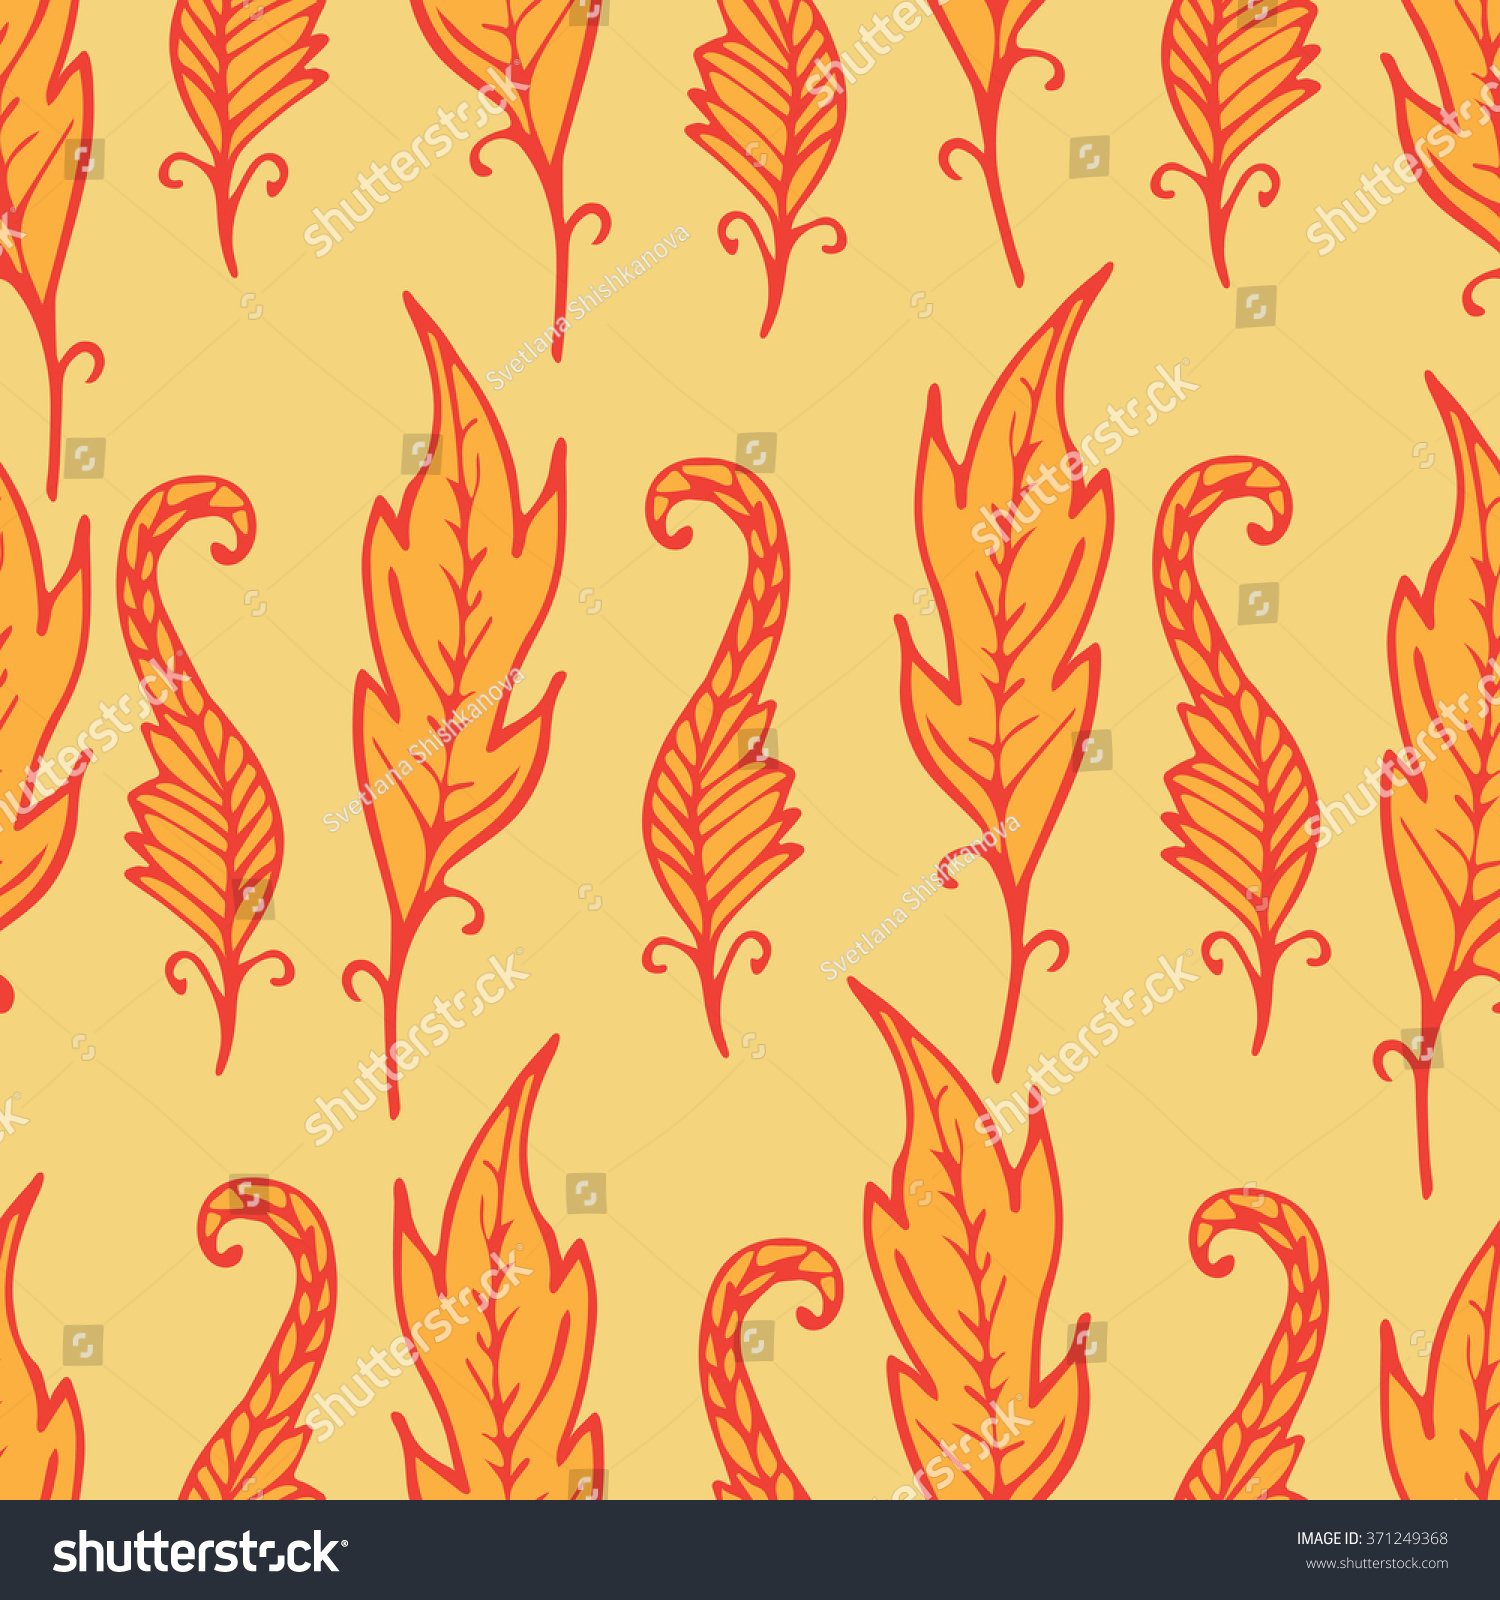 Simple Bright Seamless Floral Background Stock Vector | Short News ...